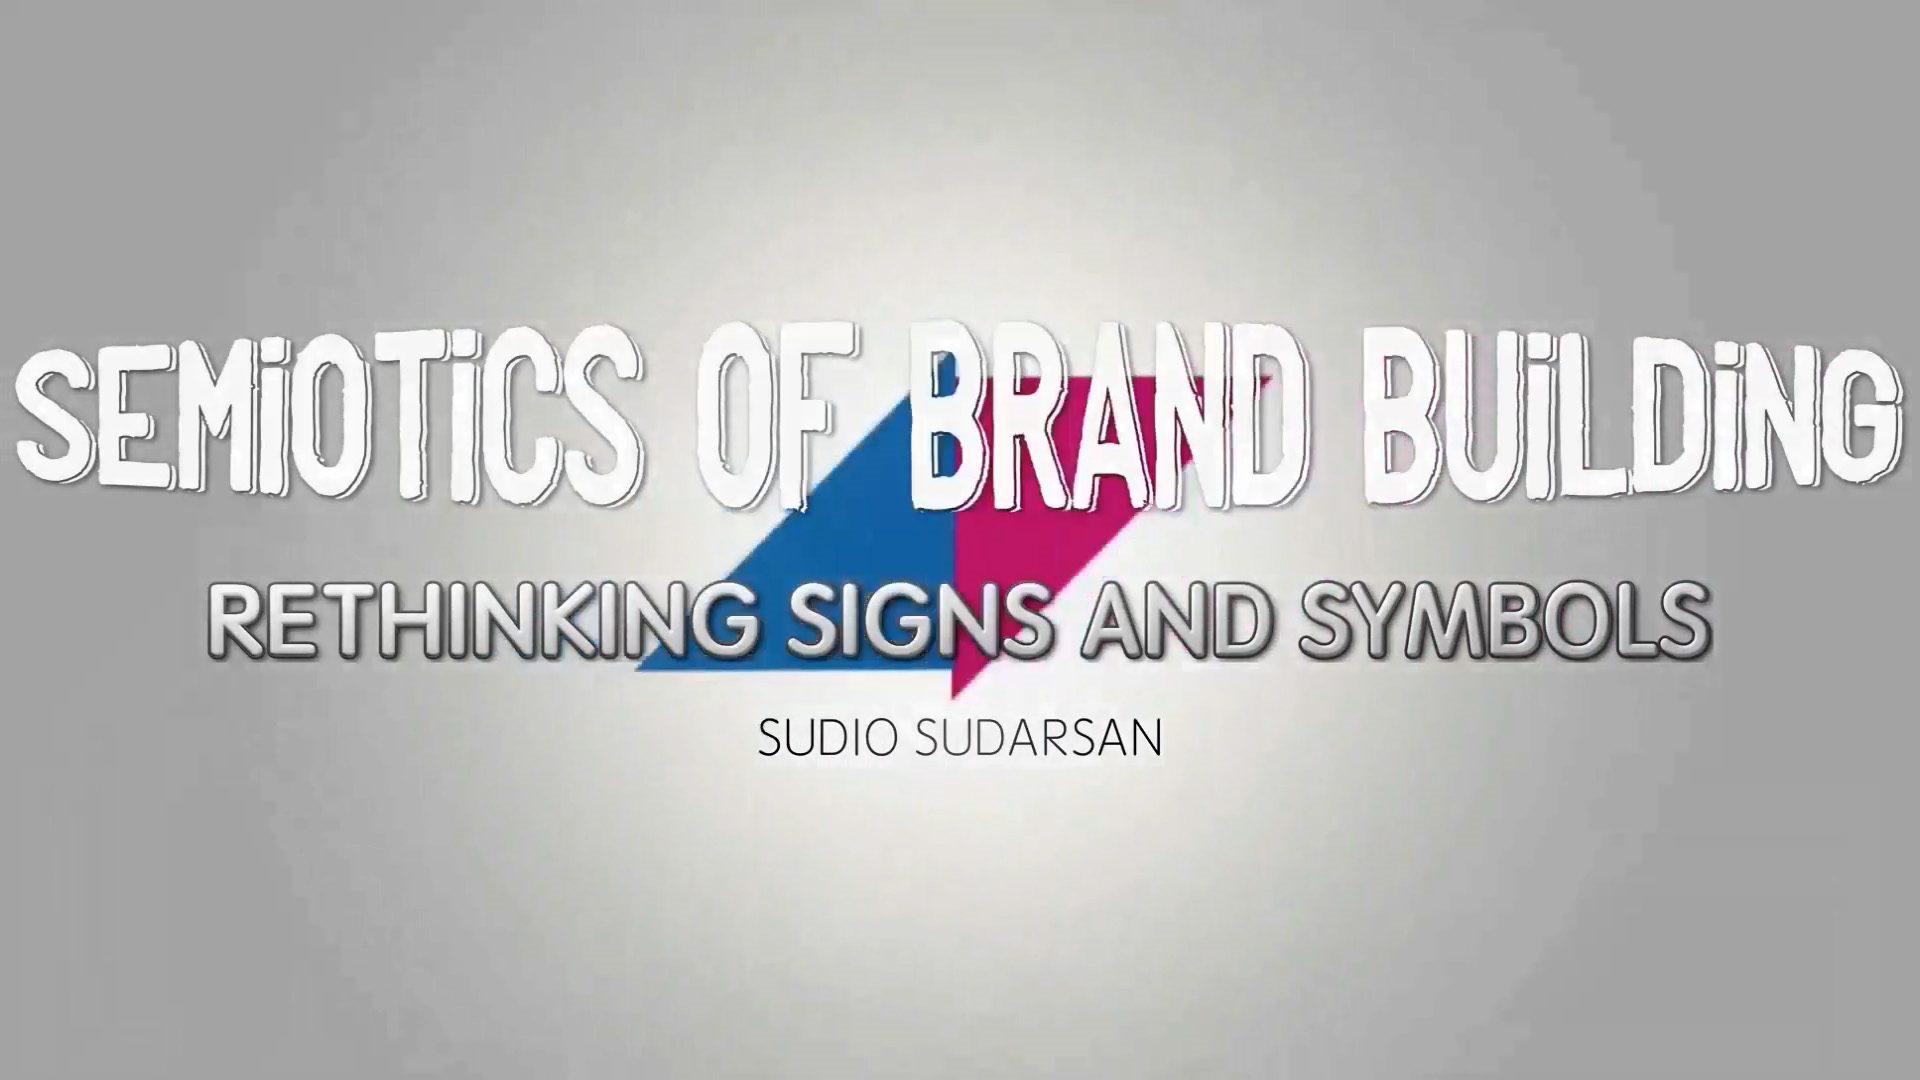 Semiotics and Brand Building: Rethinking Consumer Messaging, Signs, and Symbols